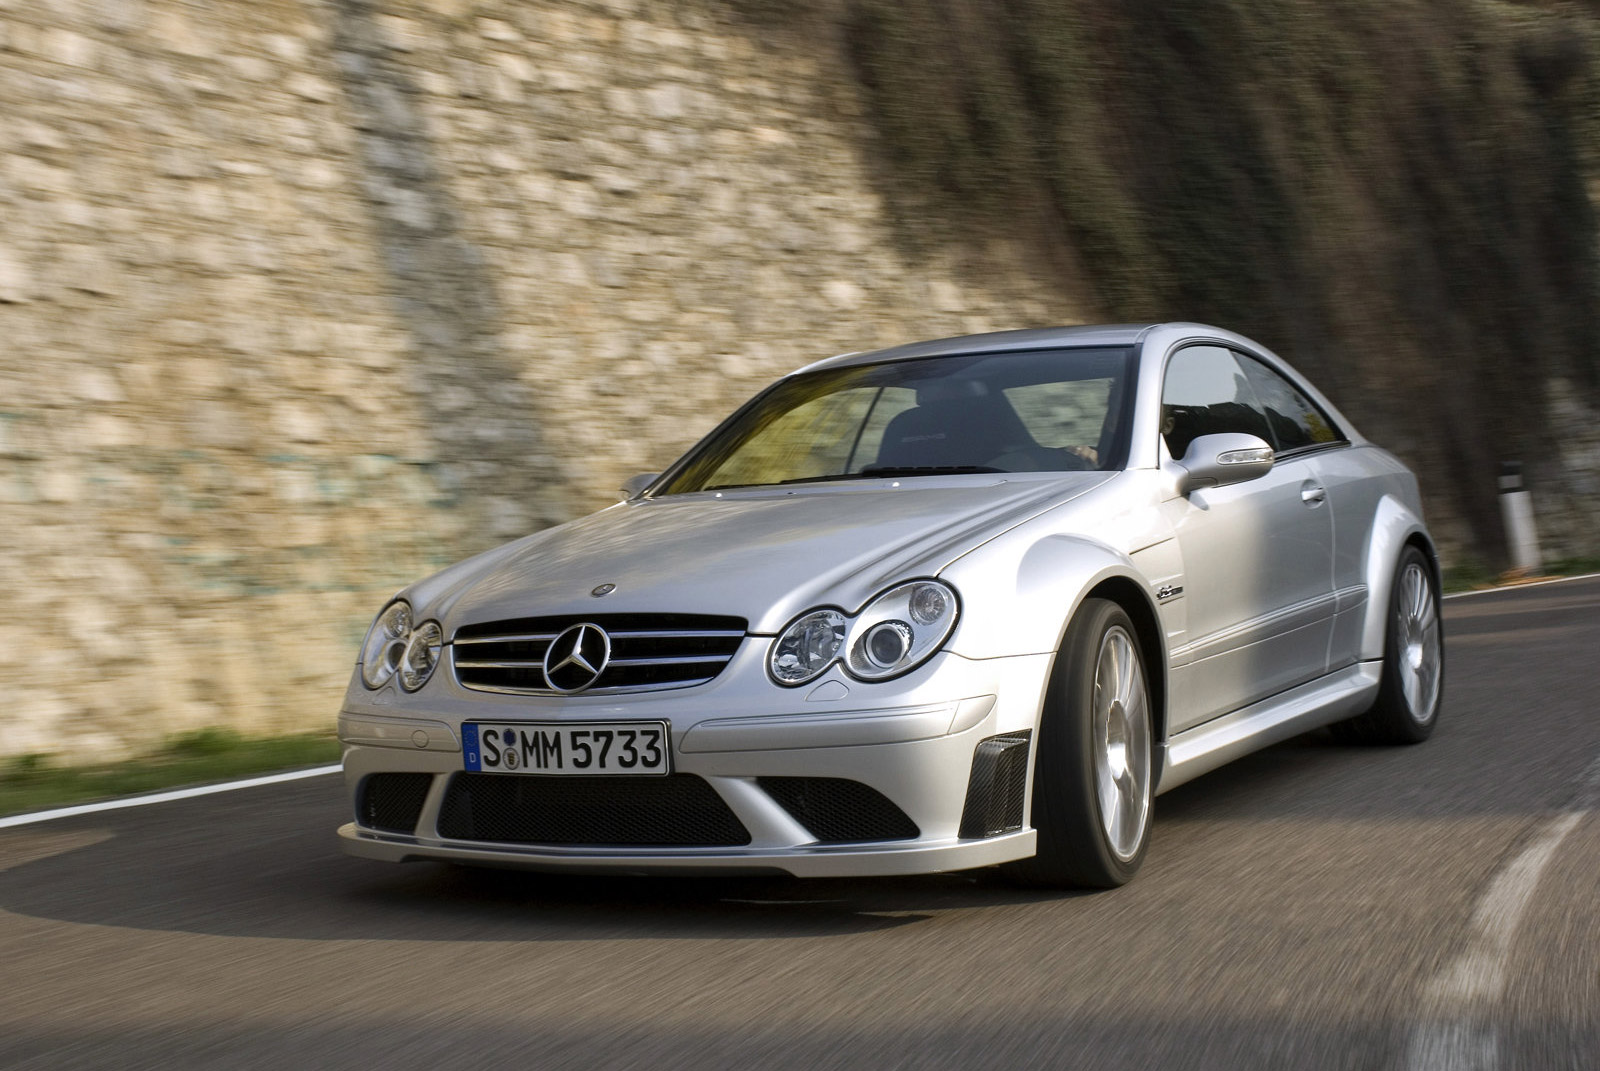 Jeremy Clarkson Finally Parts Ways With His Clk63 Amg